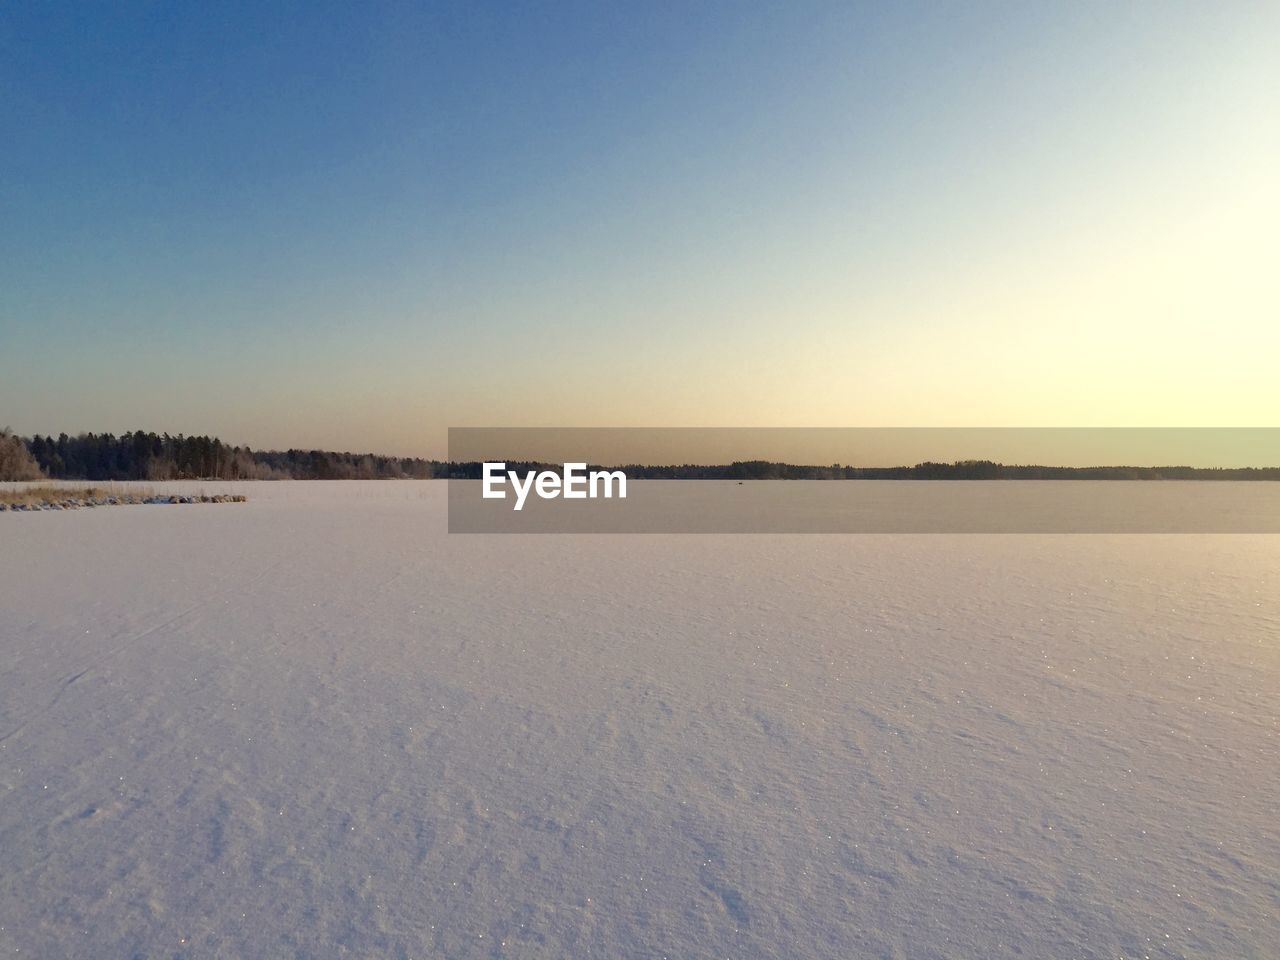 winter, cold temperature, scenics - nature, tranquil scene, snow, tranquility, beauty in nature, sky, copy space, environment, clear sky, landscape, non-urban scene, nature, no people, sunset, land, idyllic, remote, outdoors, salt flat